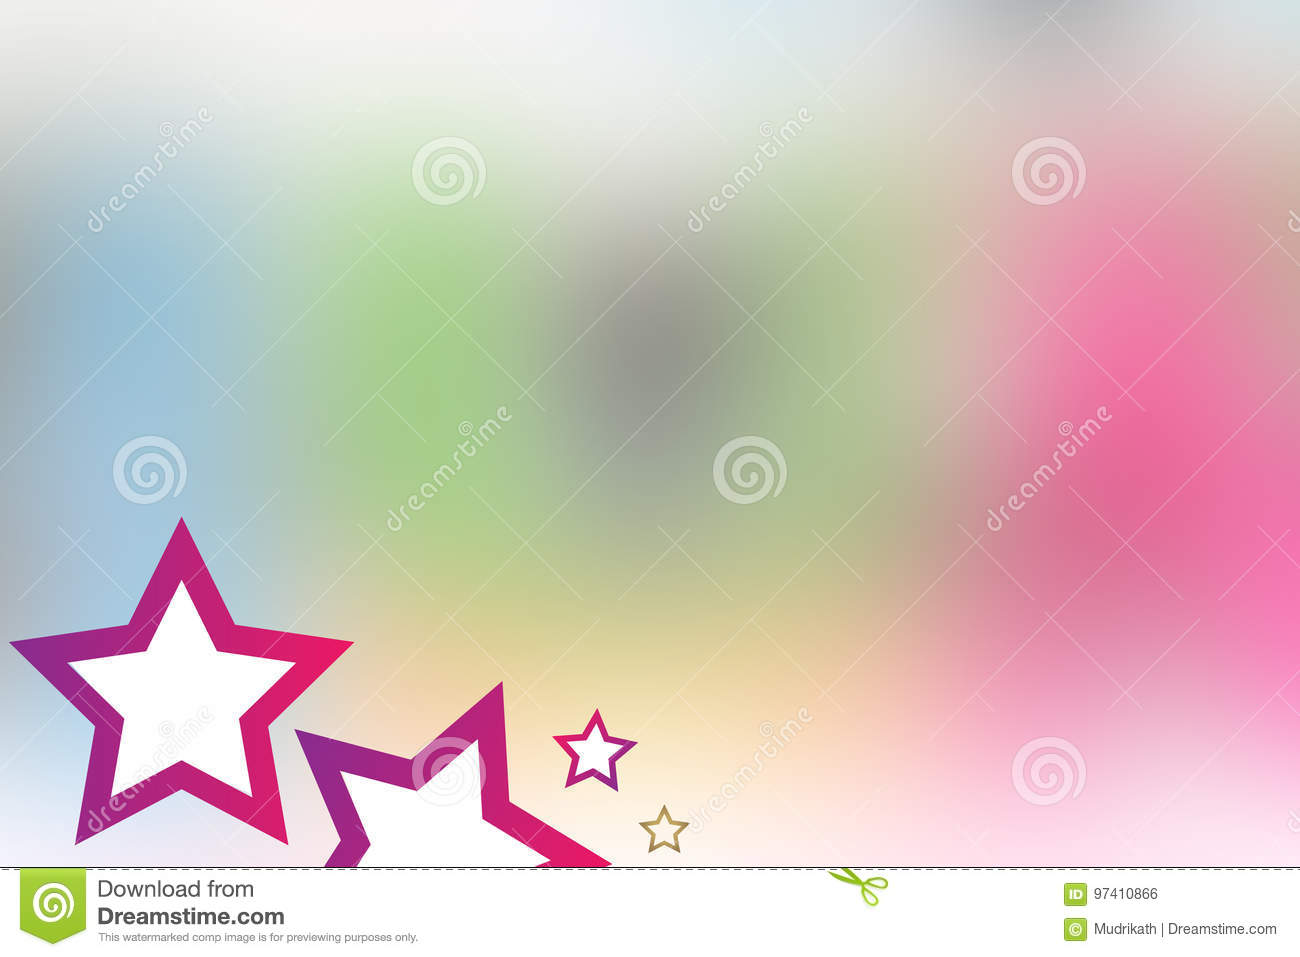 Cute Colorful PINK STAR Background for little Kids- 21 JULY 2017